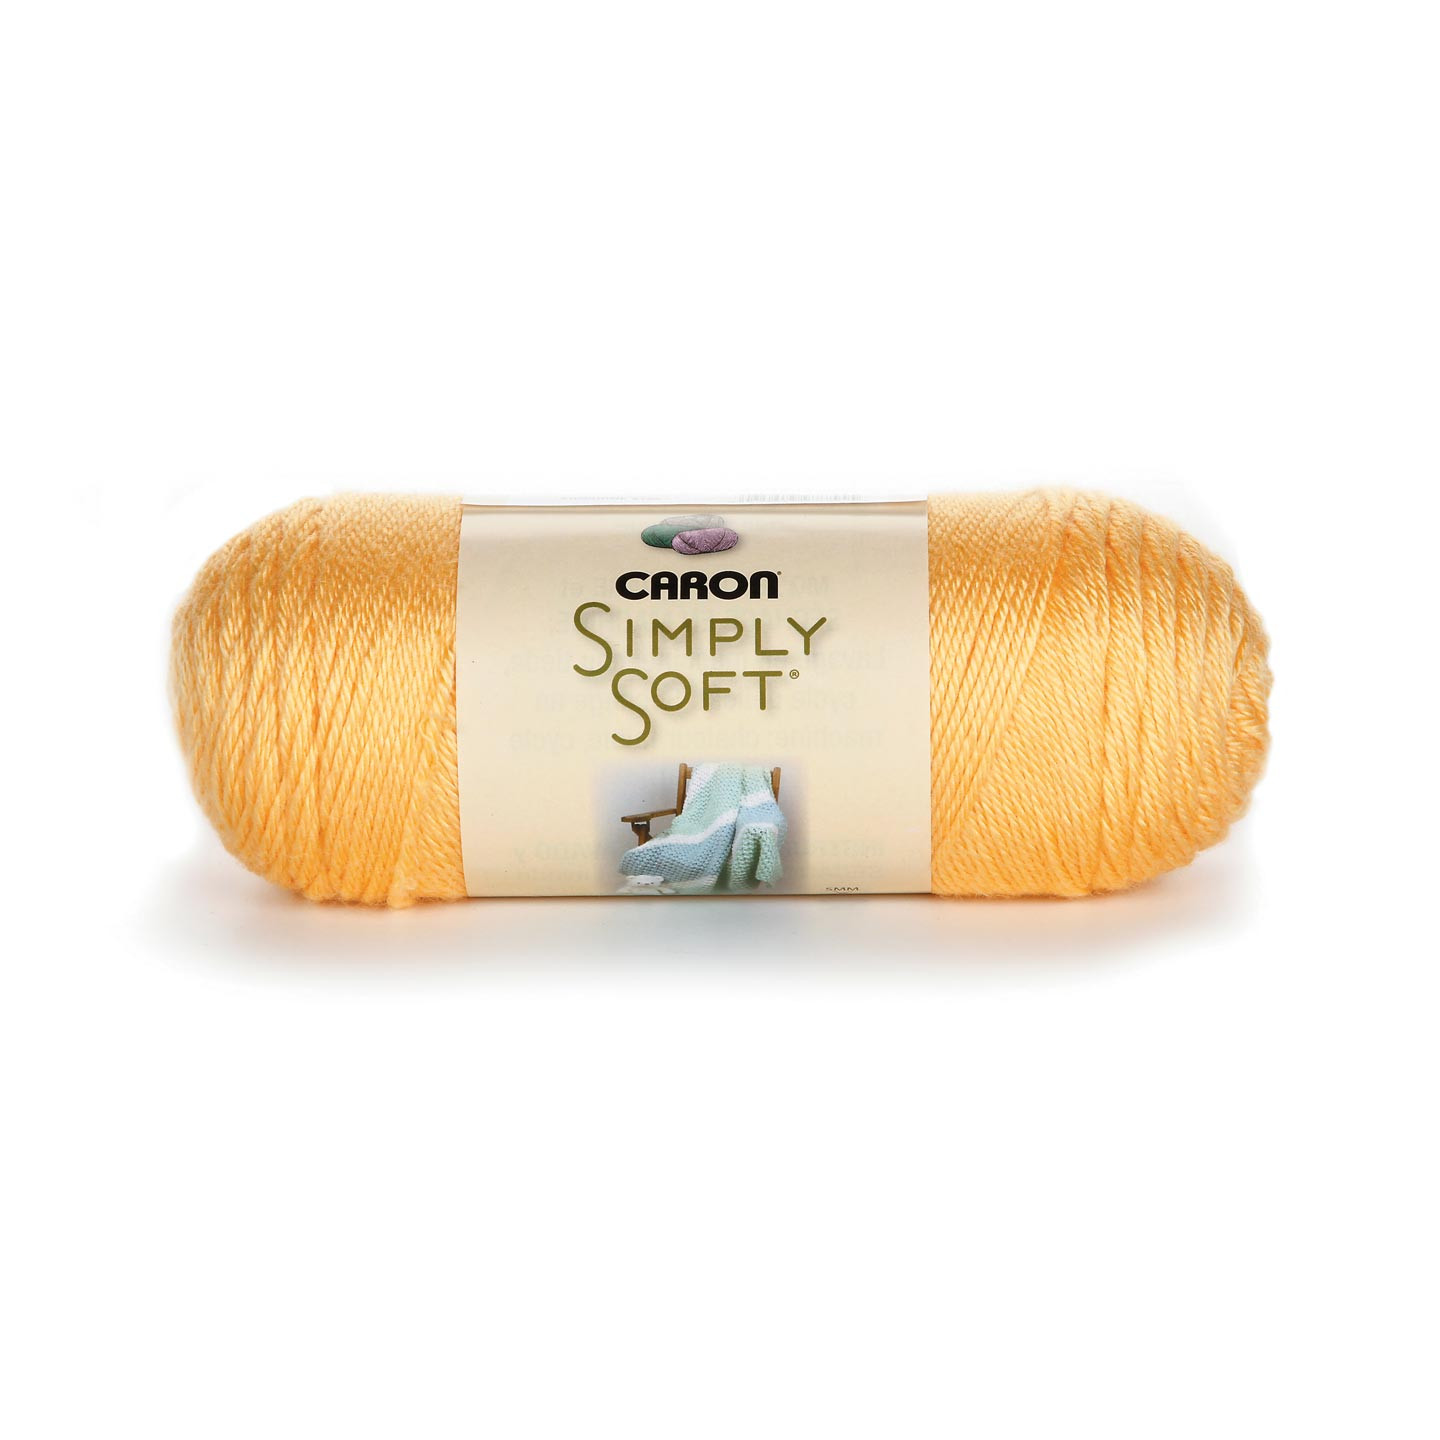 Caron Simply soft New Caron Simply soft Yarn Sunshine Of Amazing 46 Images Caron Simply soft